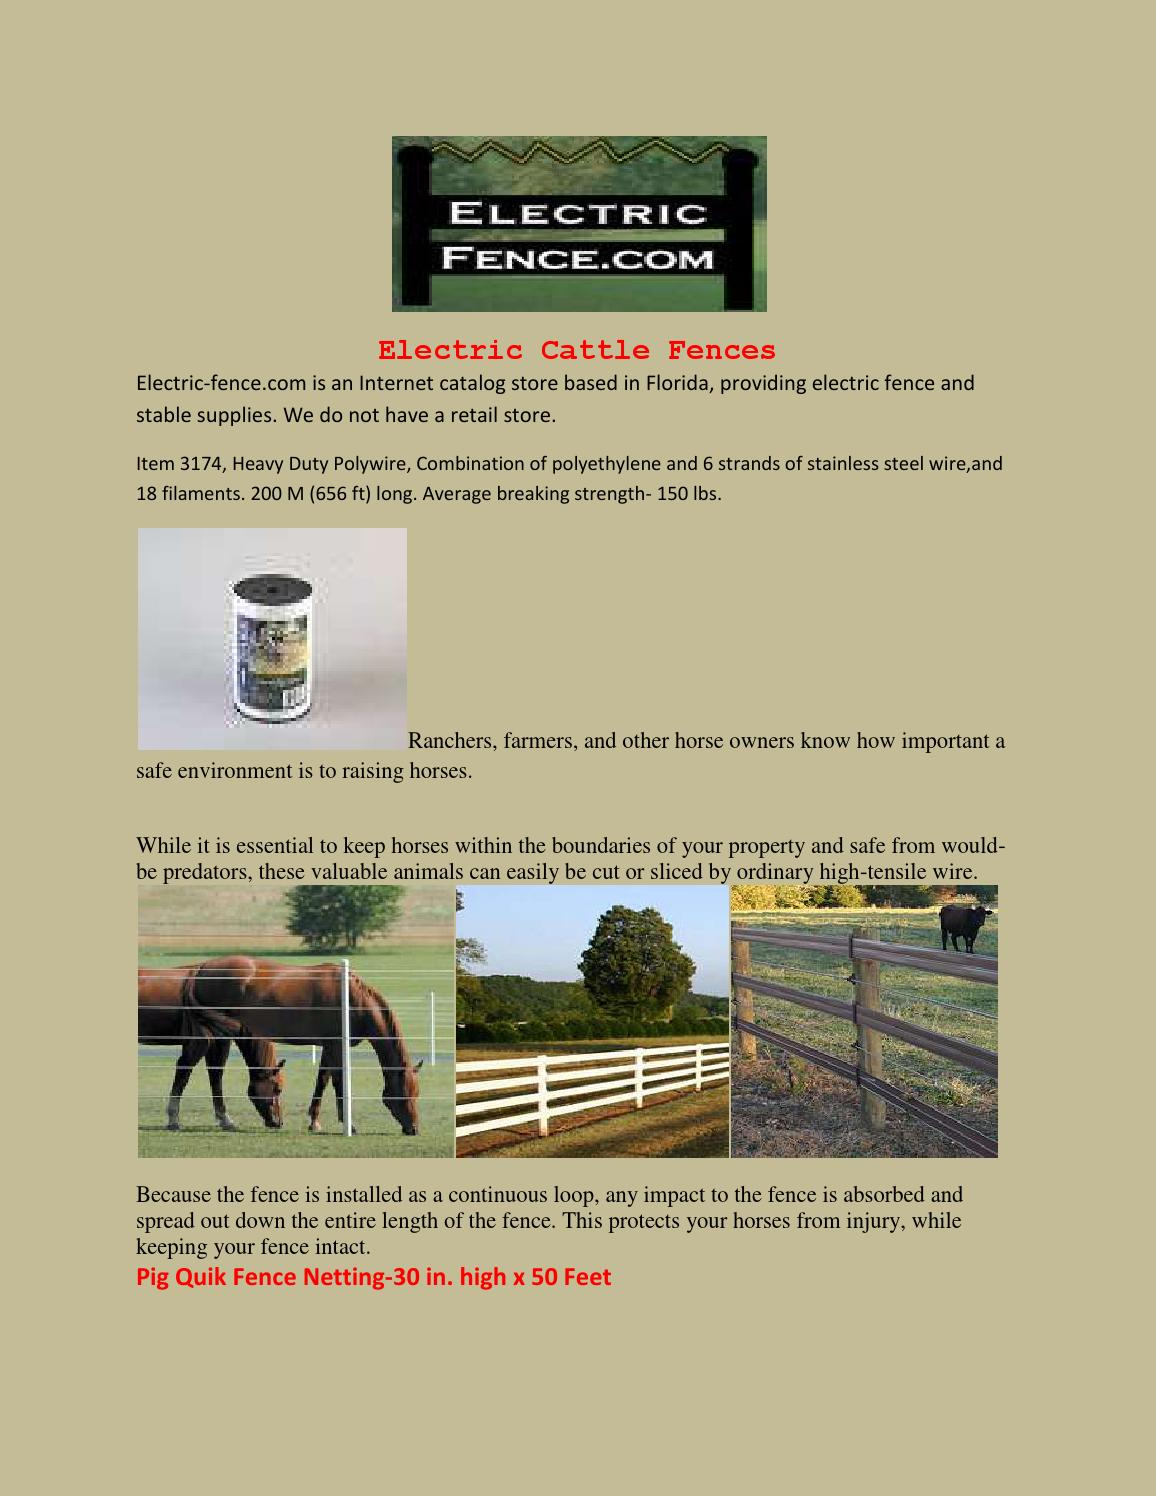 Electric Cattle Fences By Electricfence Issuu Fencing Accessories 7 Strand Fence Wire